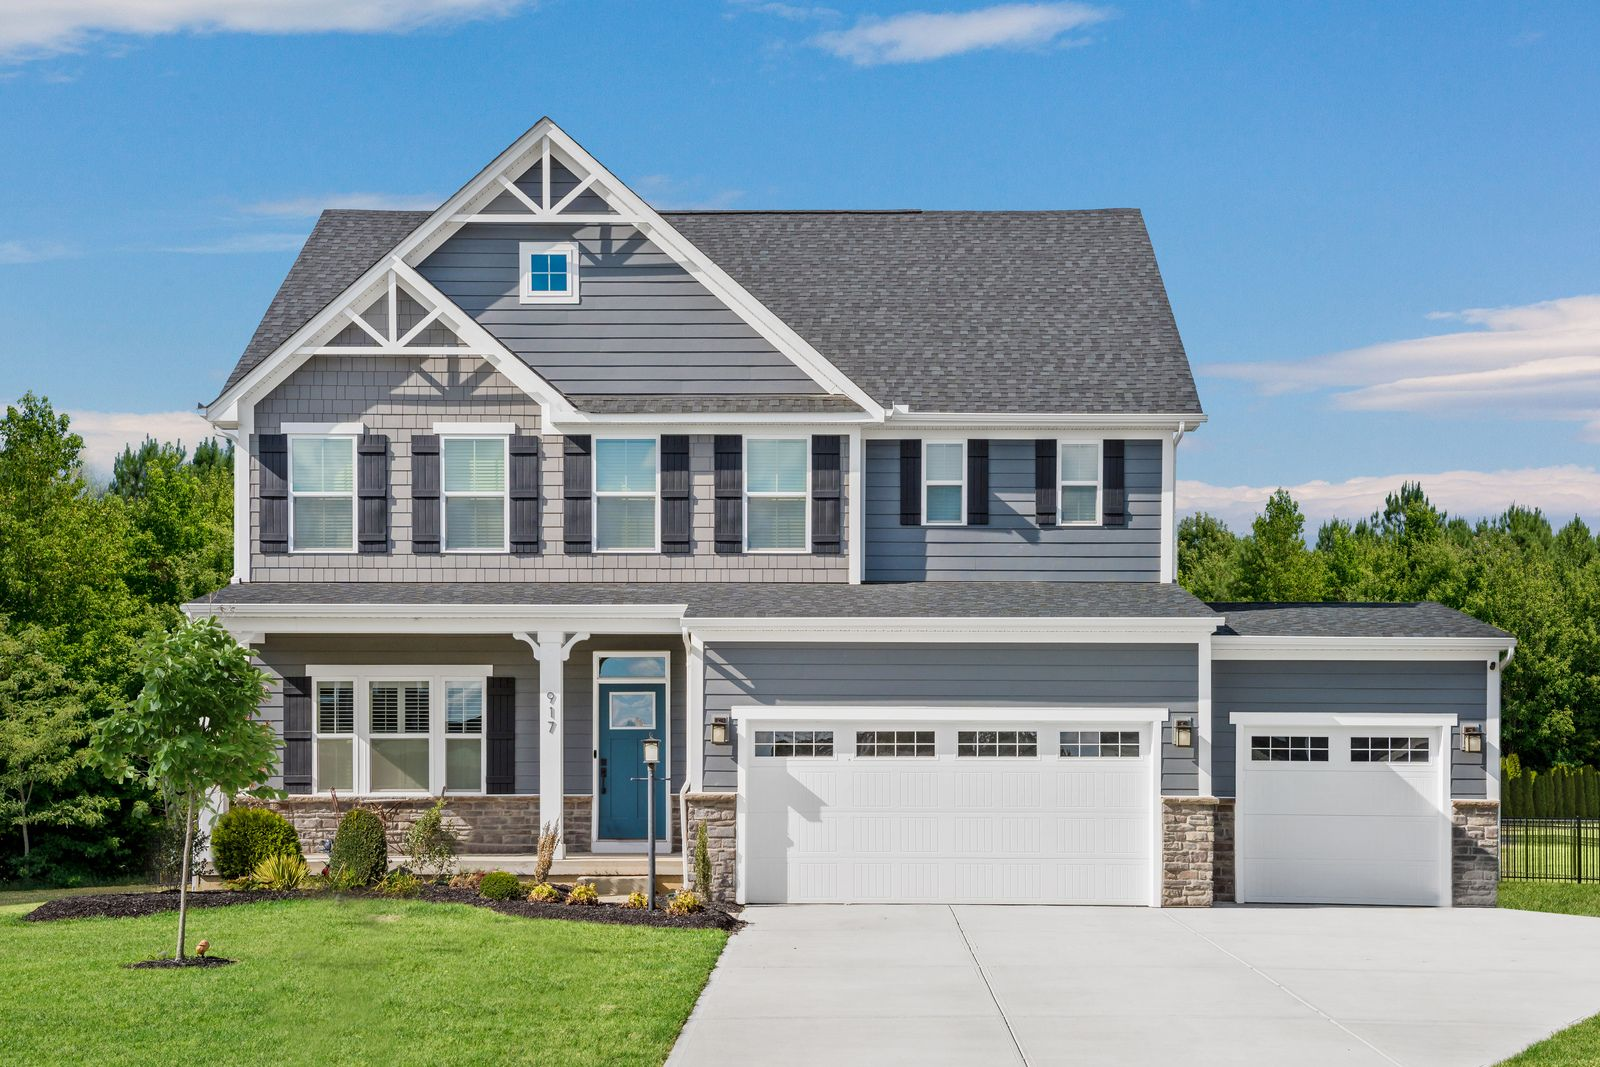 Welcome Home to Willow Brook Farm in Milford:The only new home community in Milford from mid $300s with luxury finishes, spacious & wooded homesites, greenspace, walking trails & more!Click here to schedule your visit!